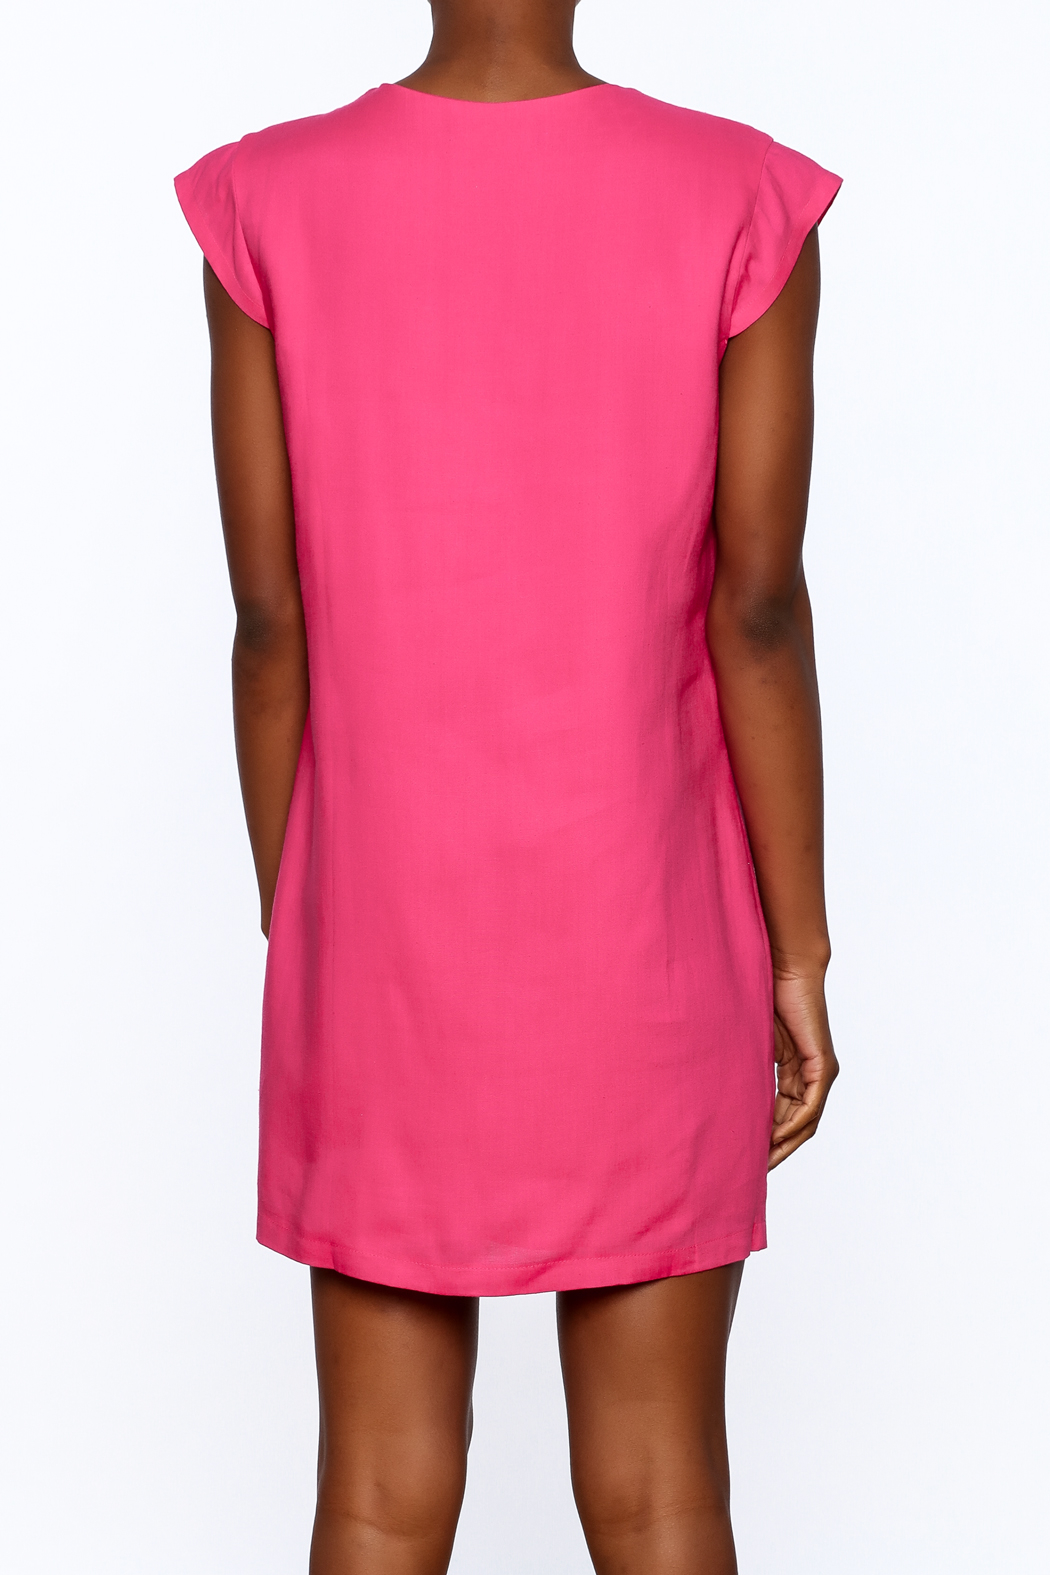 Ark & Co. Pink Tunic Dress - Back Cropped Image